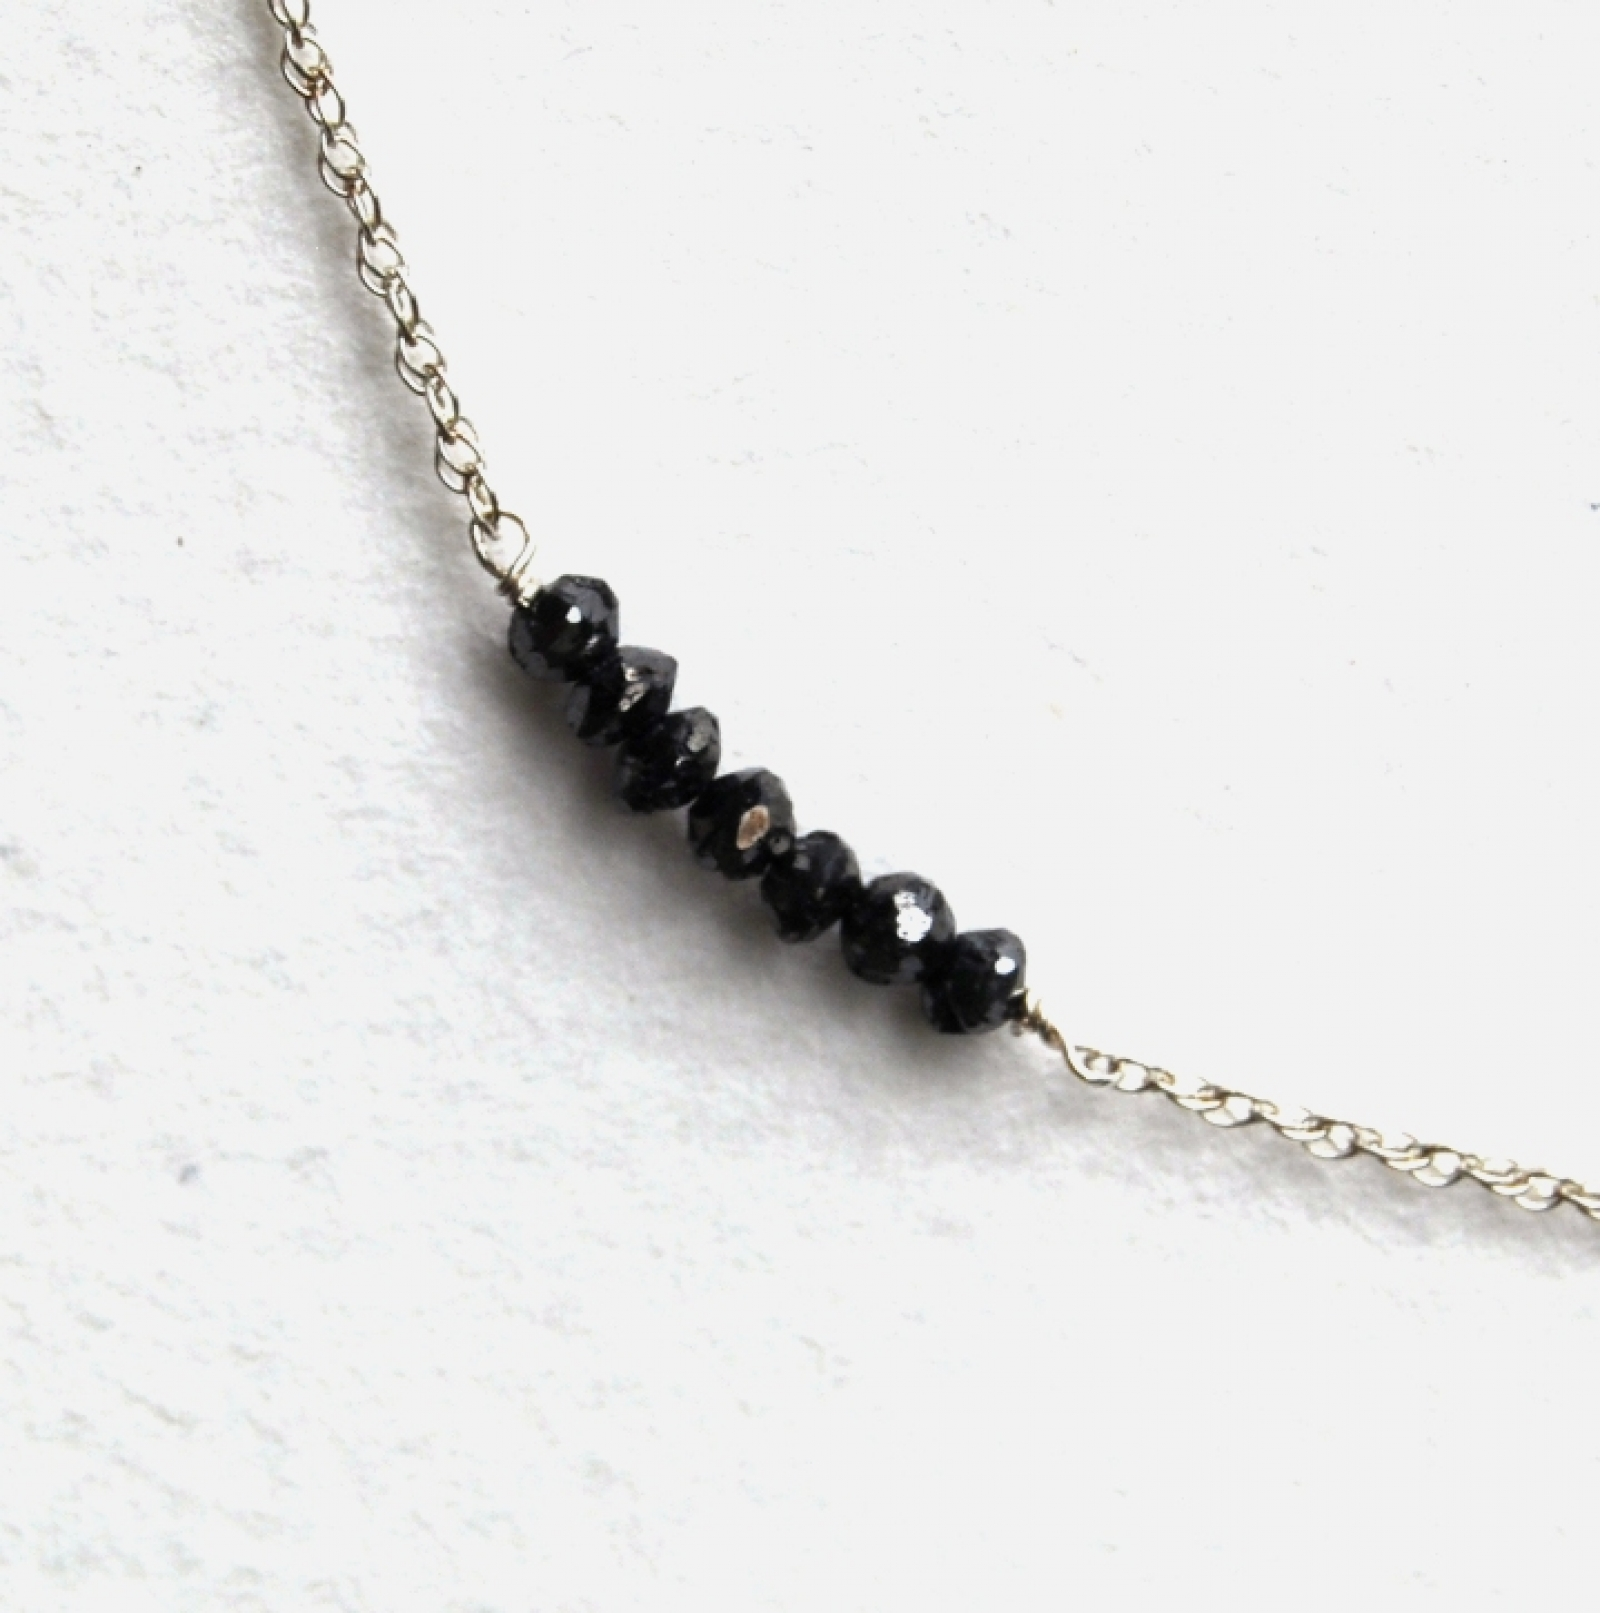 sterling ns silver diamond necklace bar stack stonewyre stacked minimalist product sale black diamonds jewellery handcrafted